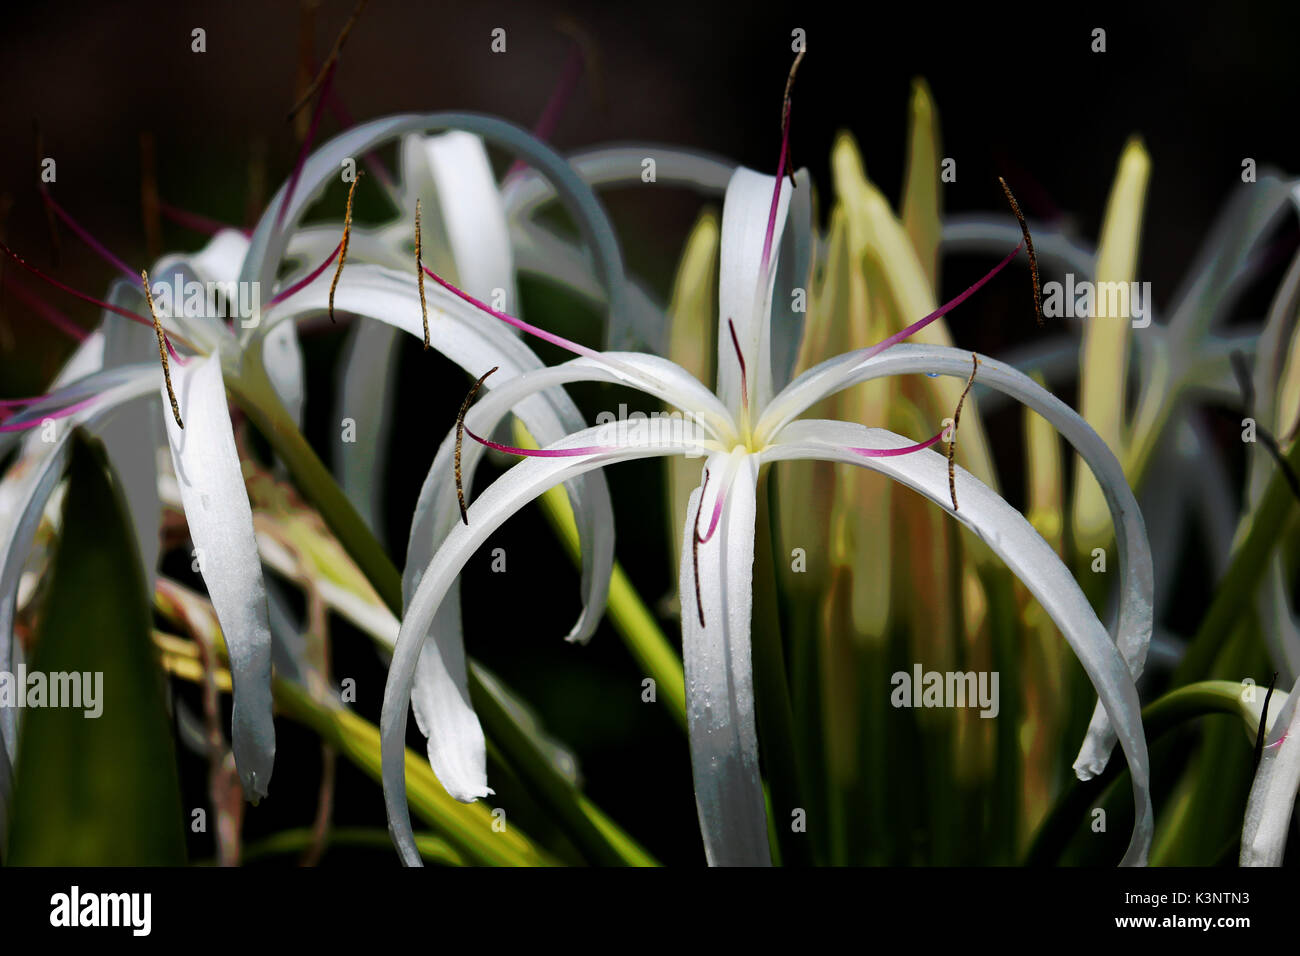 Queen Emma / Crinum Lily Flower Common in Florida. Stock Photo